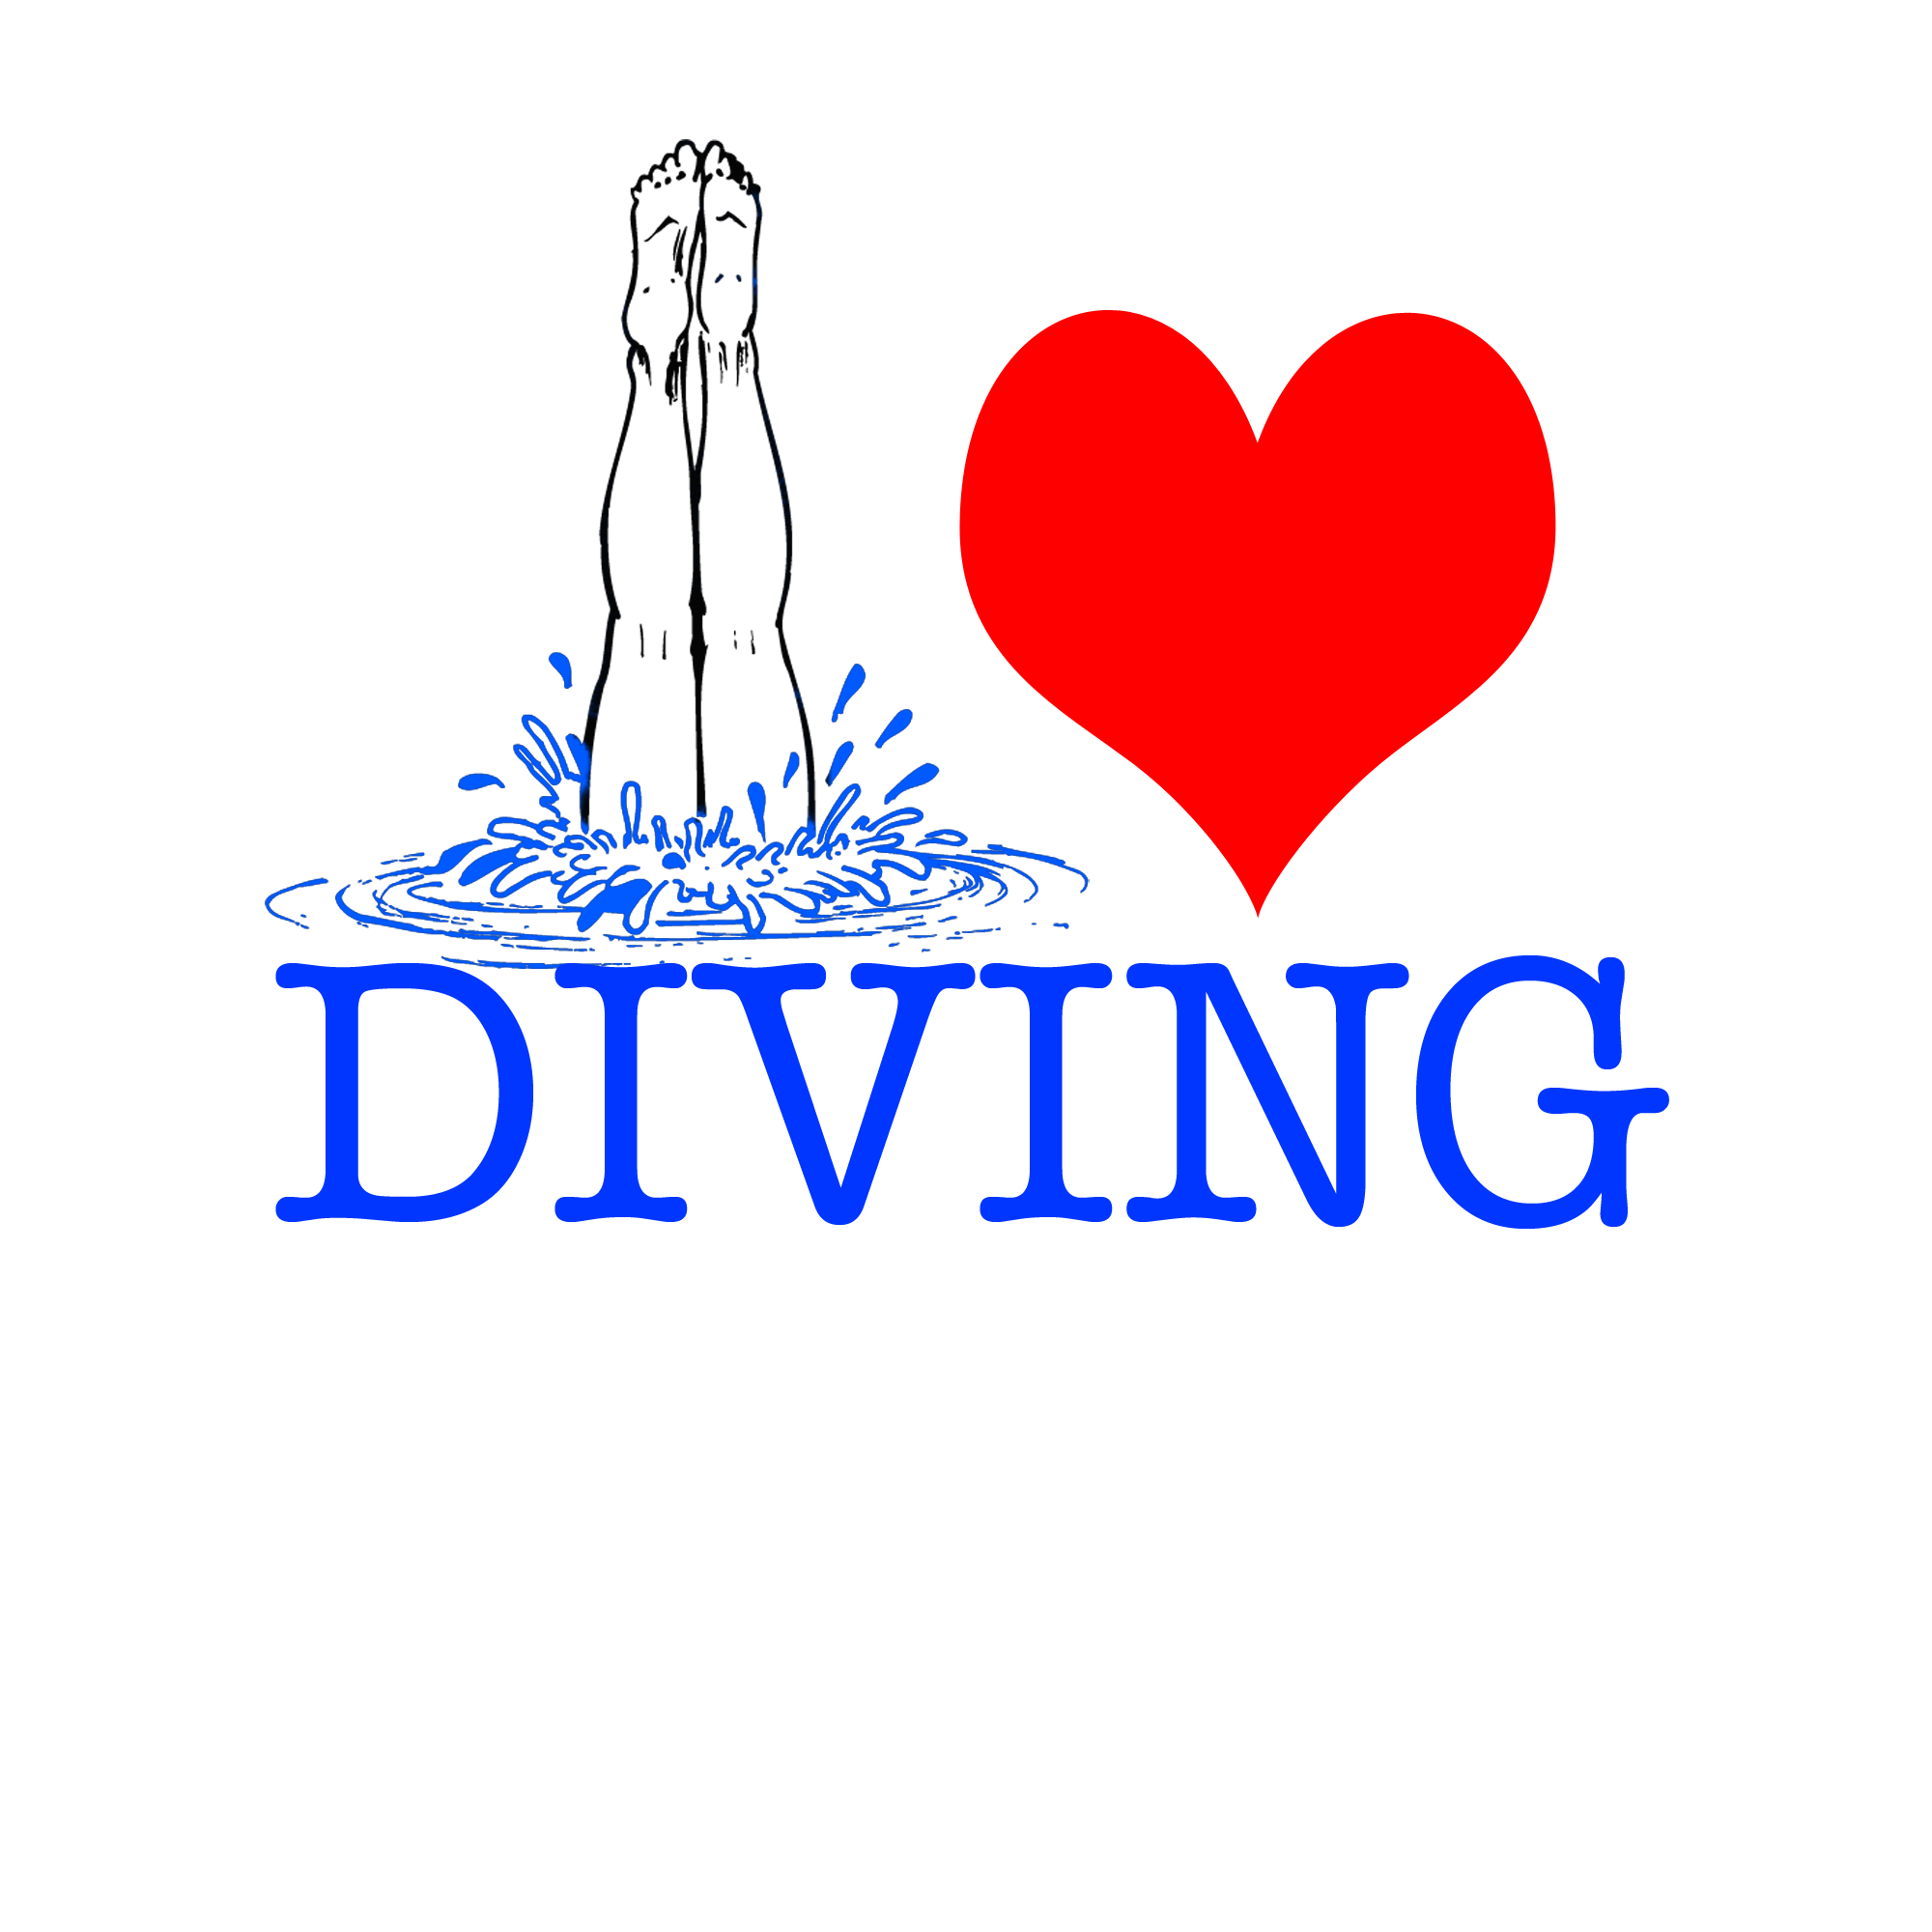 I love to dive. Diving clipart swimming team